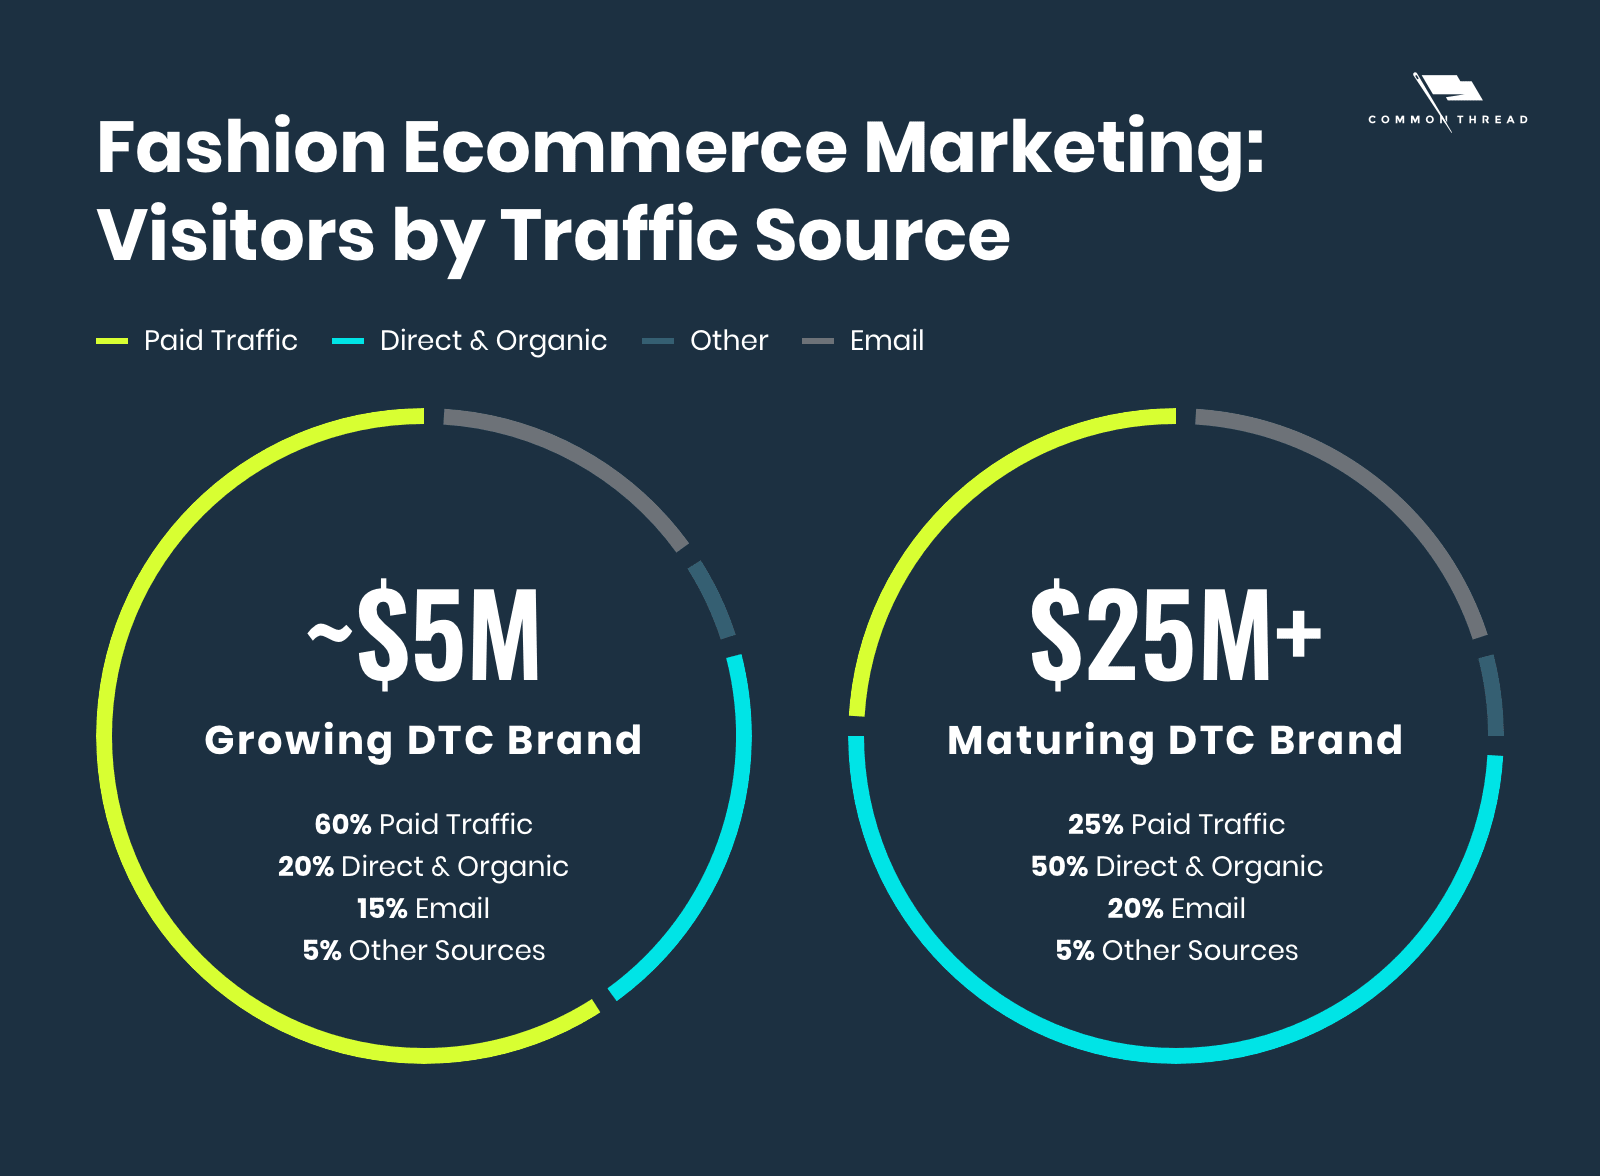 Fashion Ecommerce Marketing: Visitors by traffic source, comparing growing DTC fashion brands to maturing DTC fashion brands